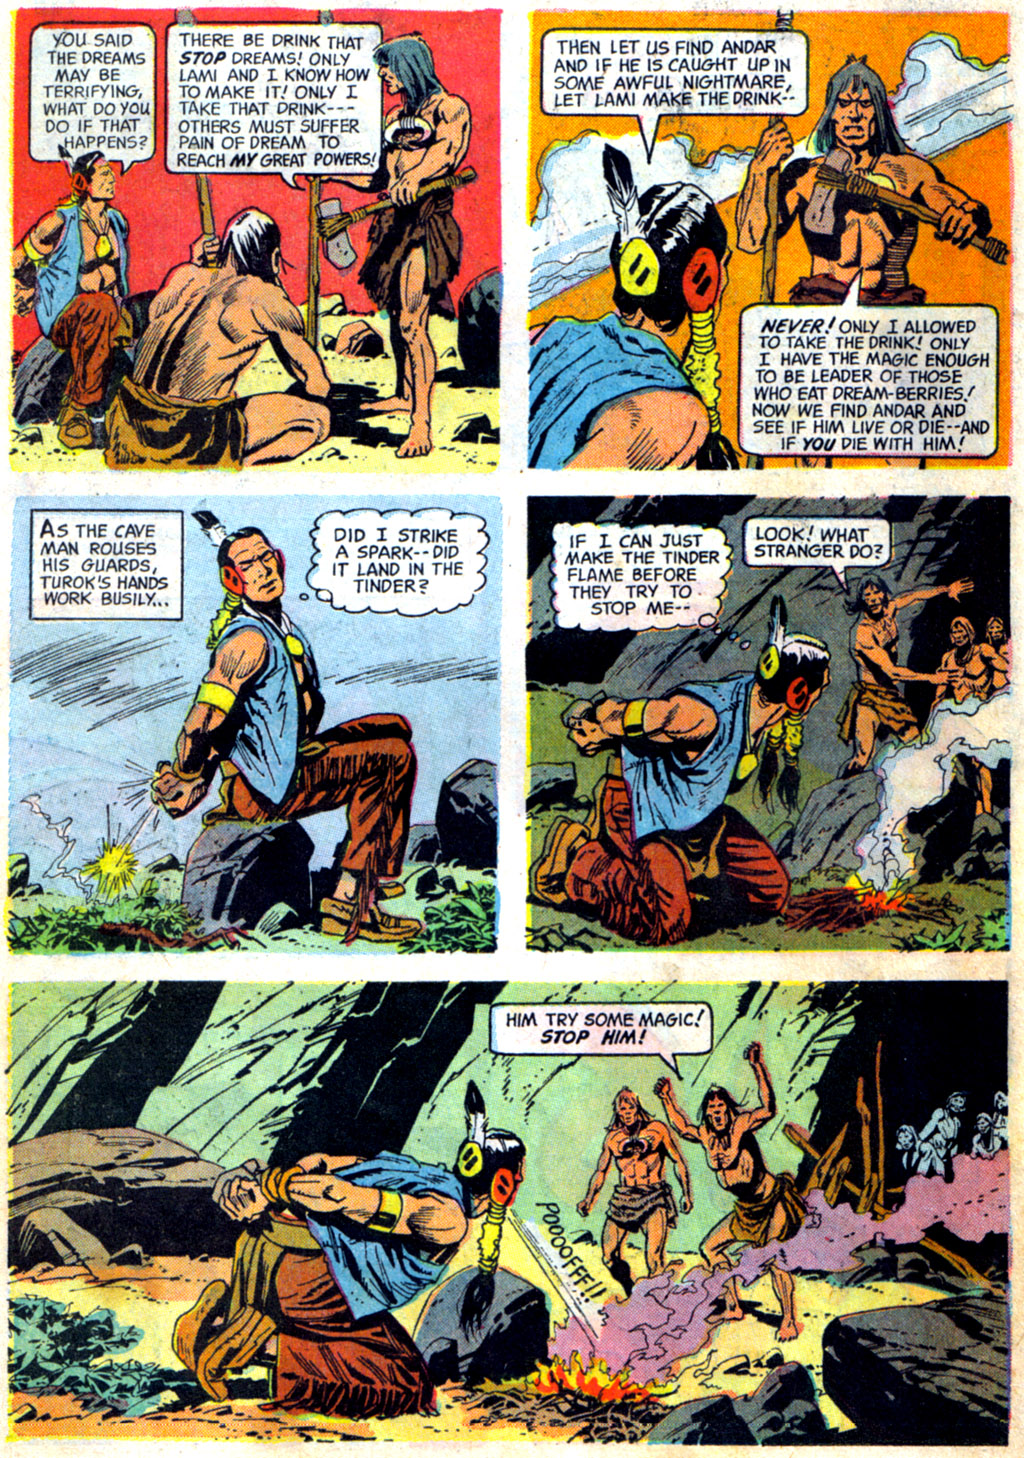 Read online Turok, Son of Stone comic -  Issue #62 - 22